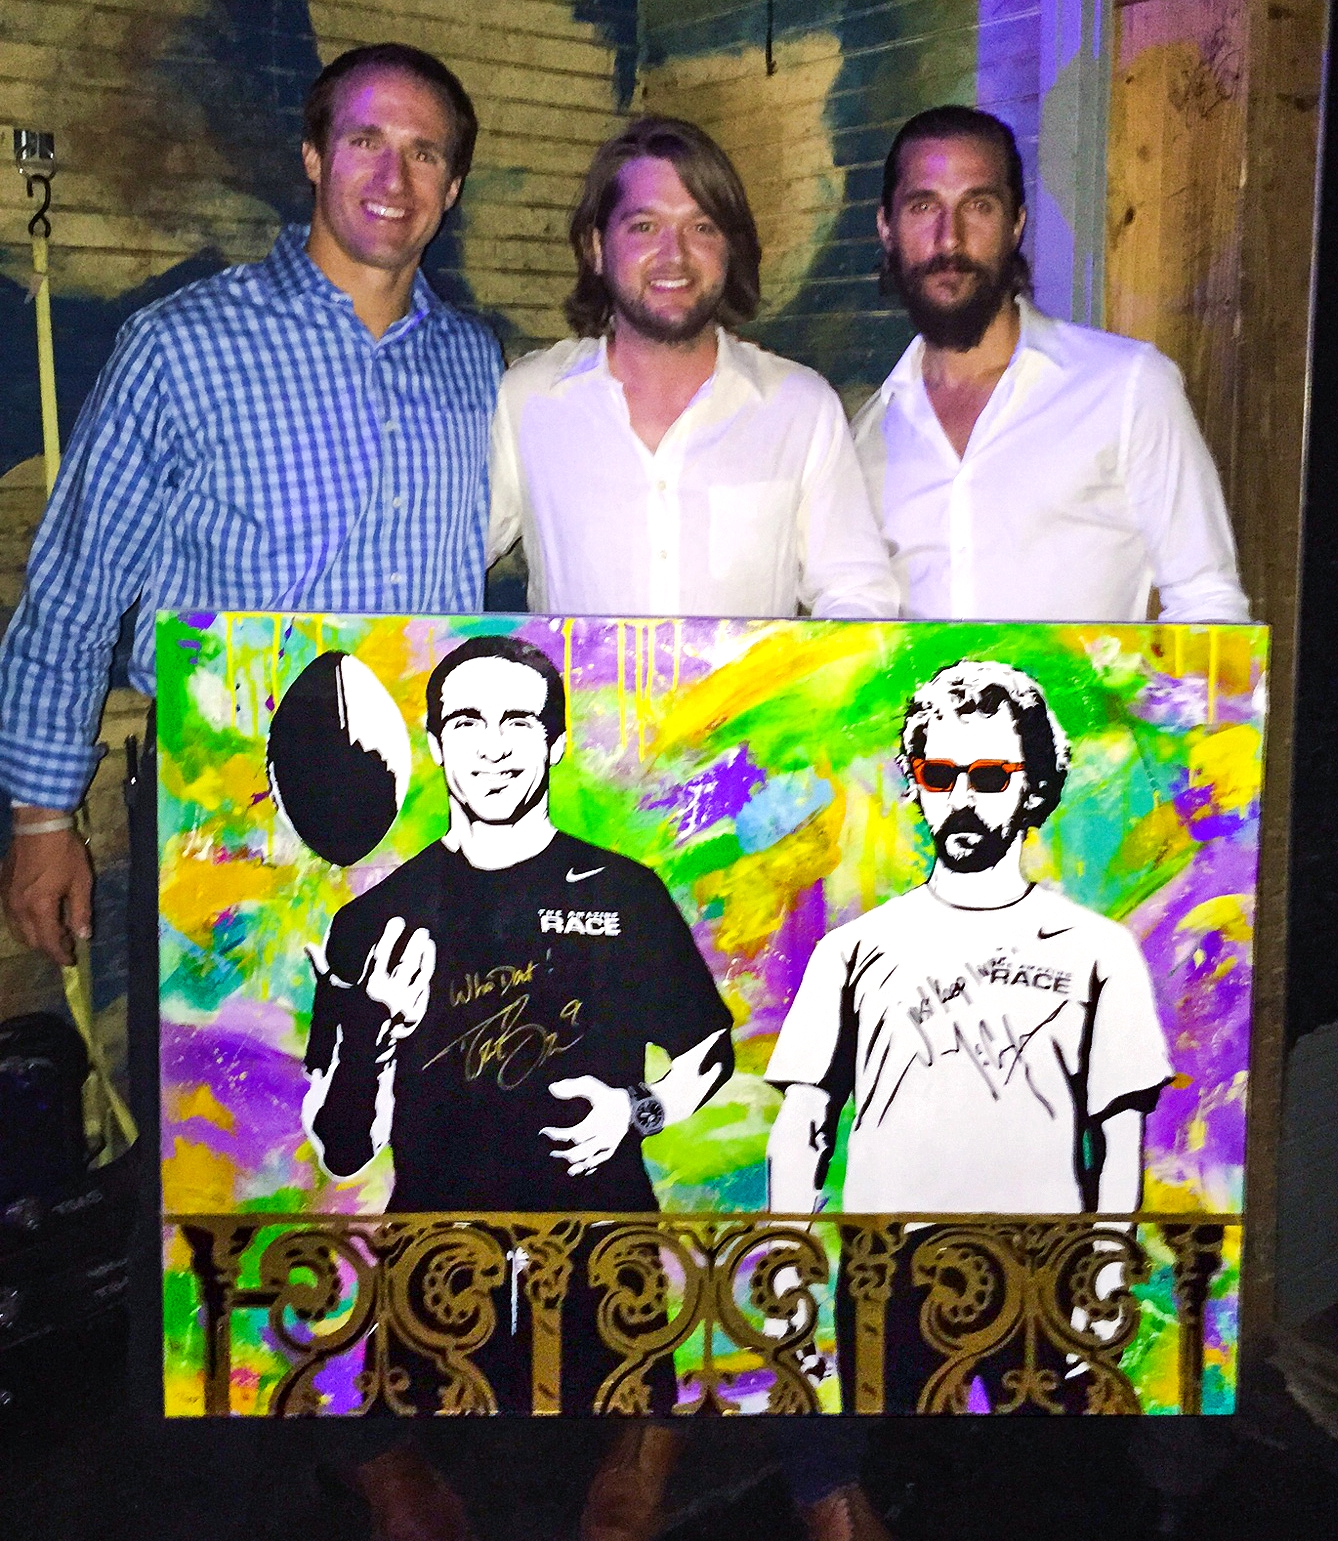 Matthew McConaughey and Drew Bress sign, along with pose, behind Tripp's custom painting. The portrait was donated to help raise funds for both their charities; The Bree's Dream and Just Keep Livin Foundation. Special thanks to the Super Service Challenge!